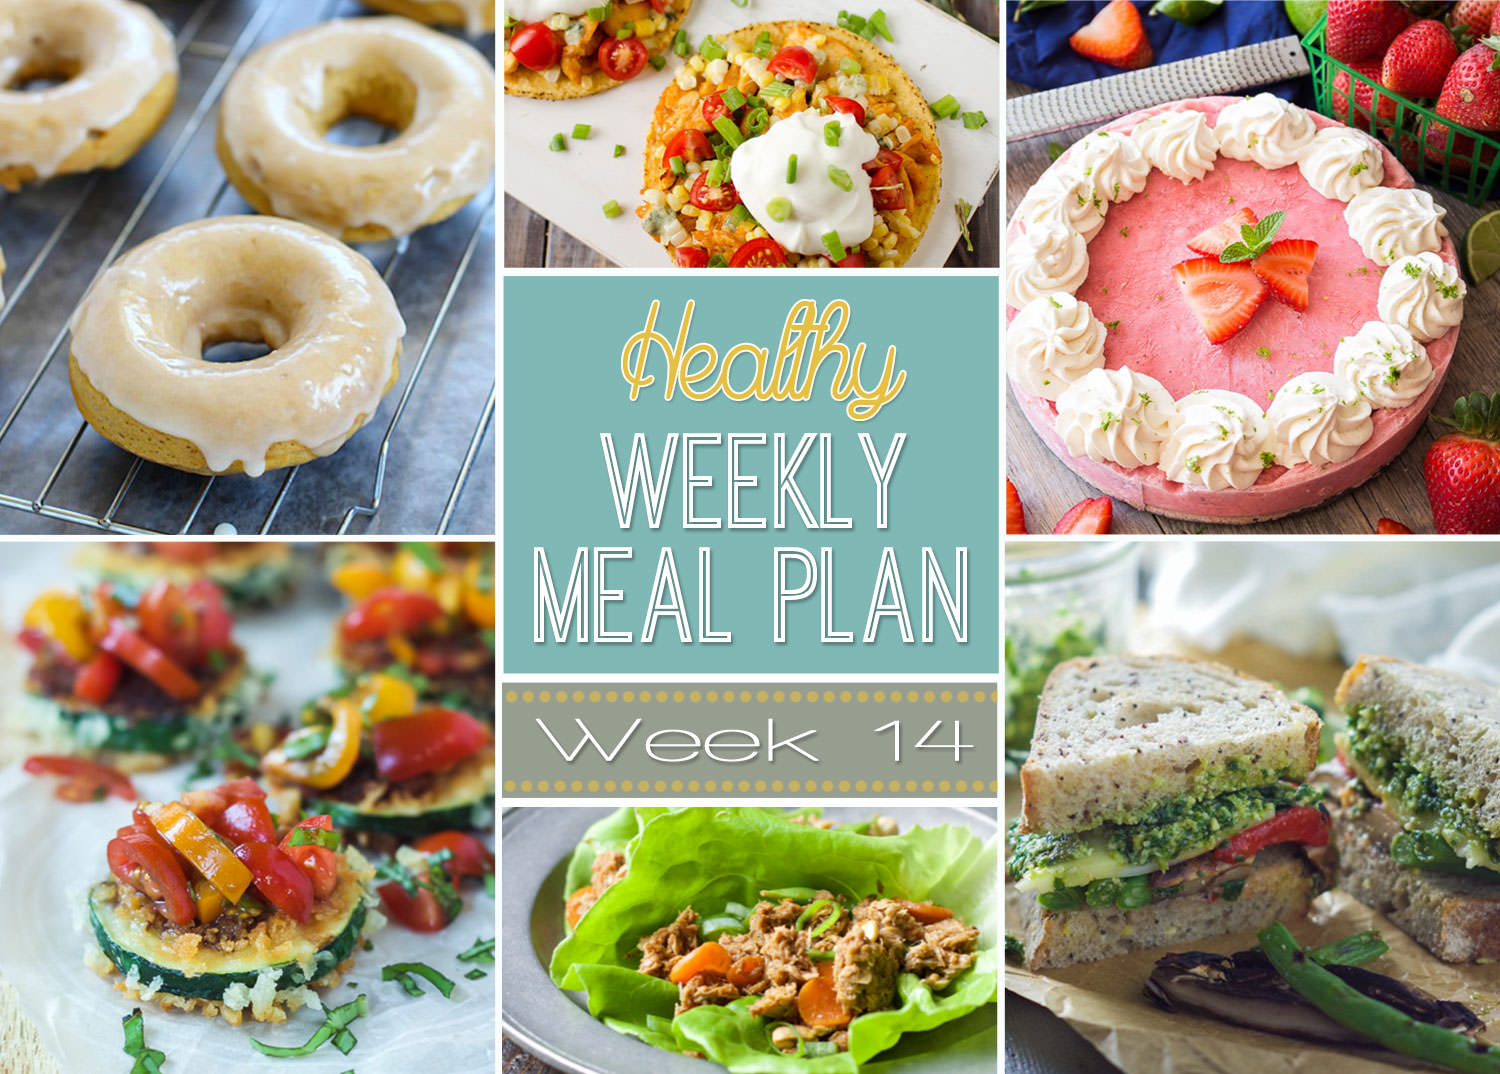 Healthy Meal Plan Week #14 is full of healthy comfort food to help you warm up from all this cold weather!